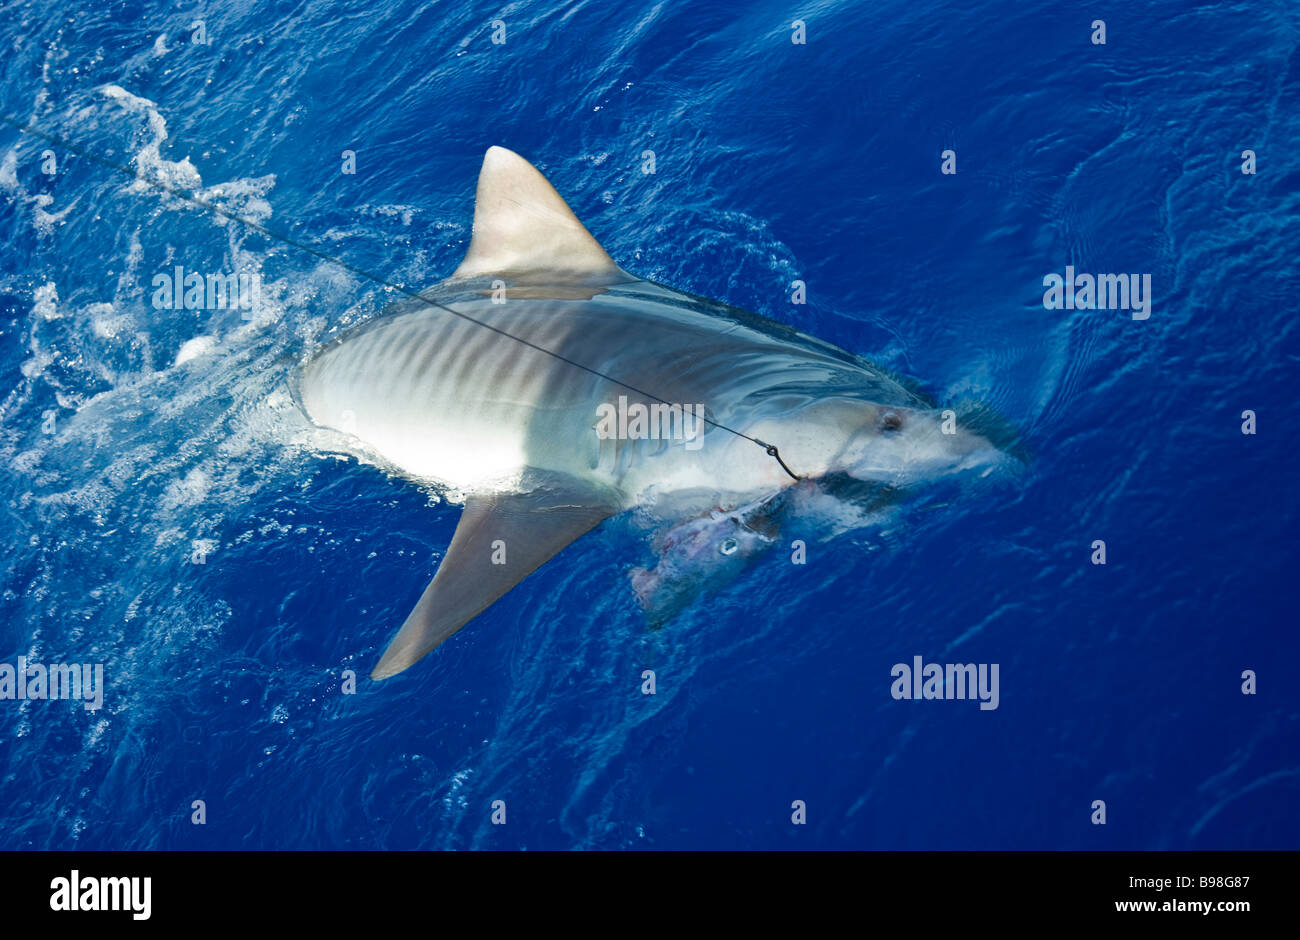 Catch of tiger shark big game fishing La Reunion France | Tigerhai, Fang am Haken, Hochseeangeln, La ReunionLa Réunion, Stock Photo